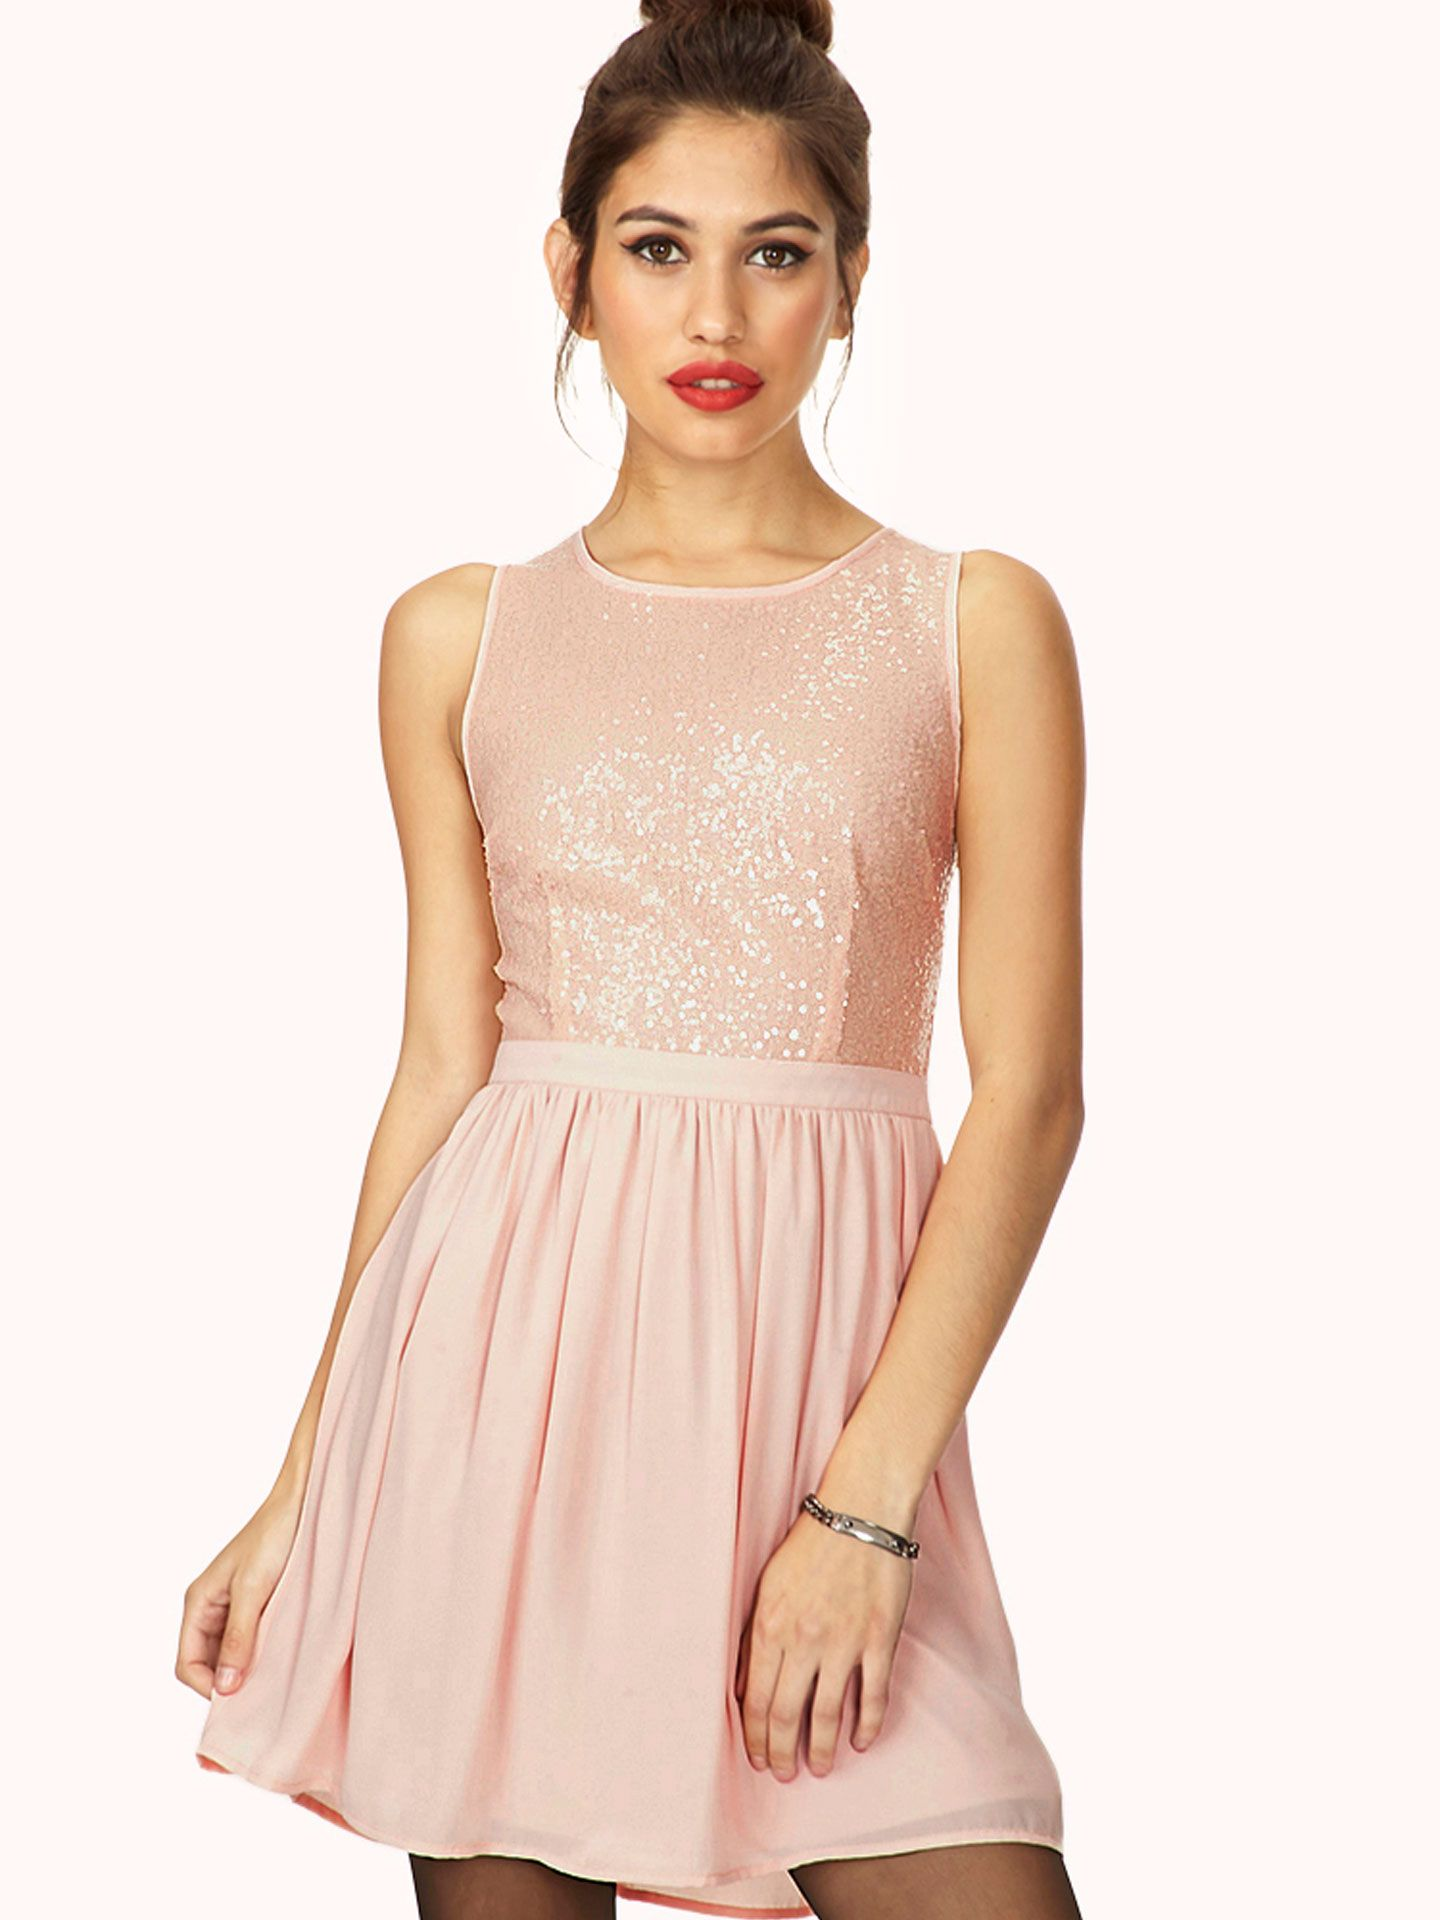 18a3902e301 13 Adorable Prom Dresses You Won t Believe Cost Less Than  50 ...